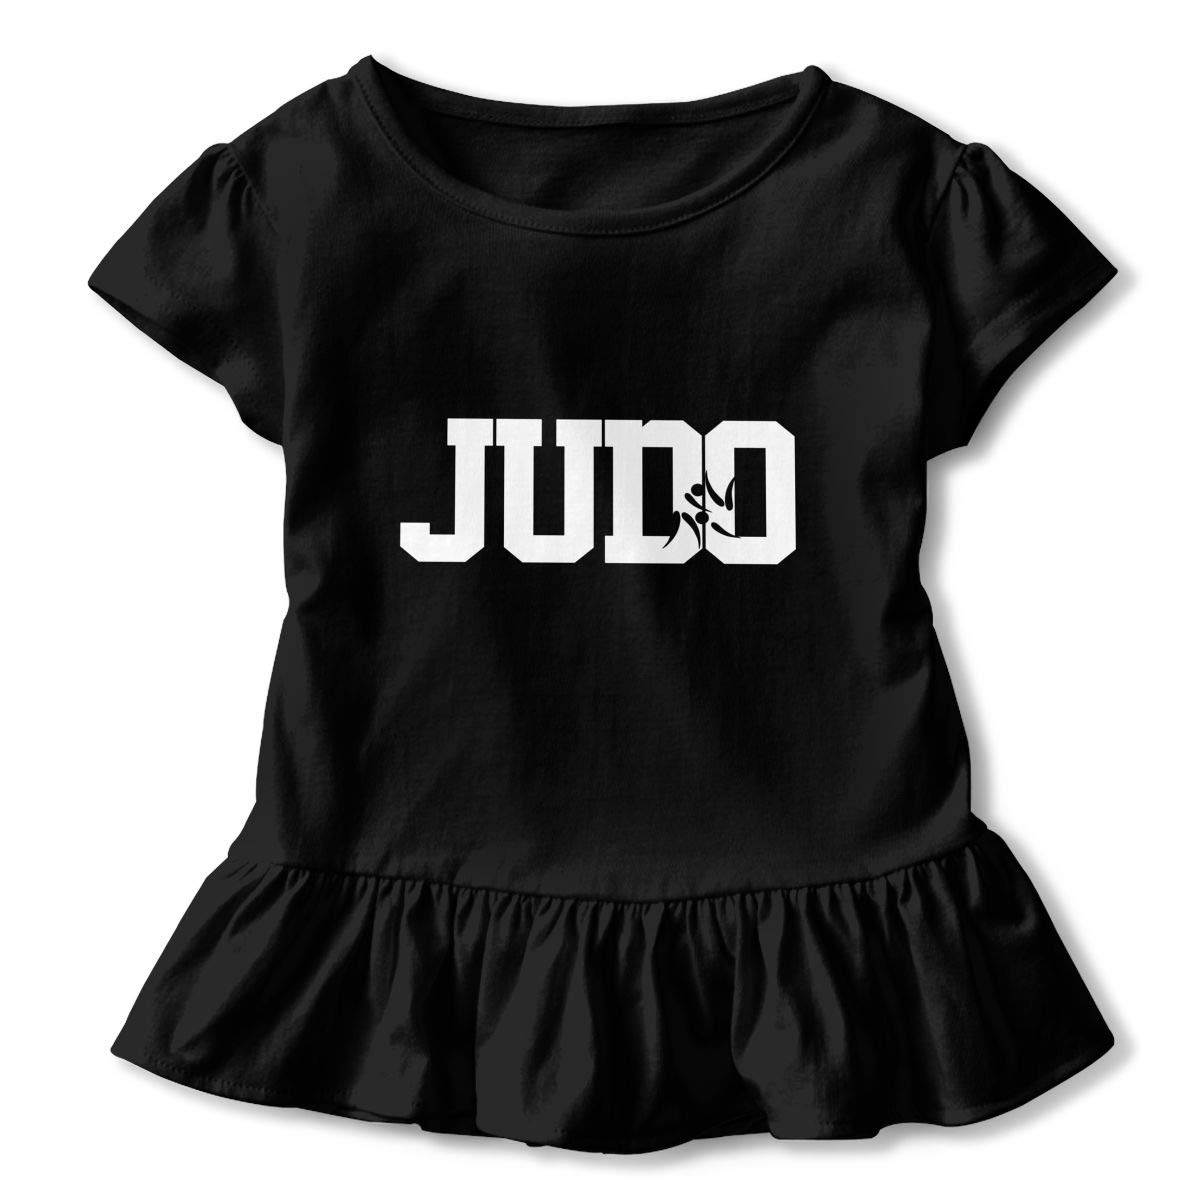 Cheng Jian Bo Judo Letter Print Toddler Girls T Shirt Kids Cotton Short Sleeve Ruffle Tee